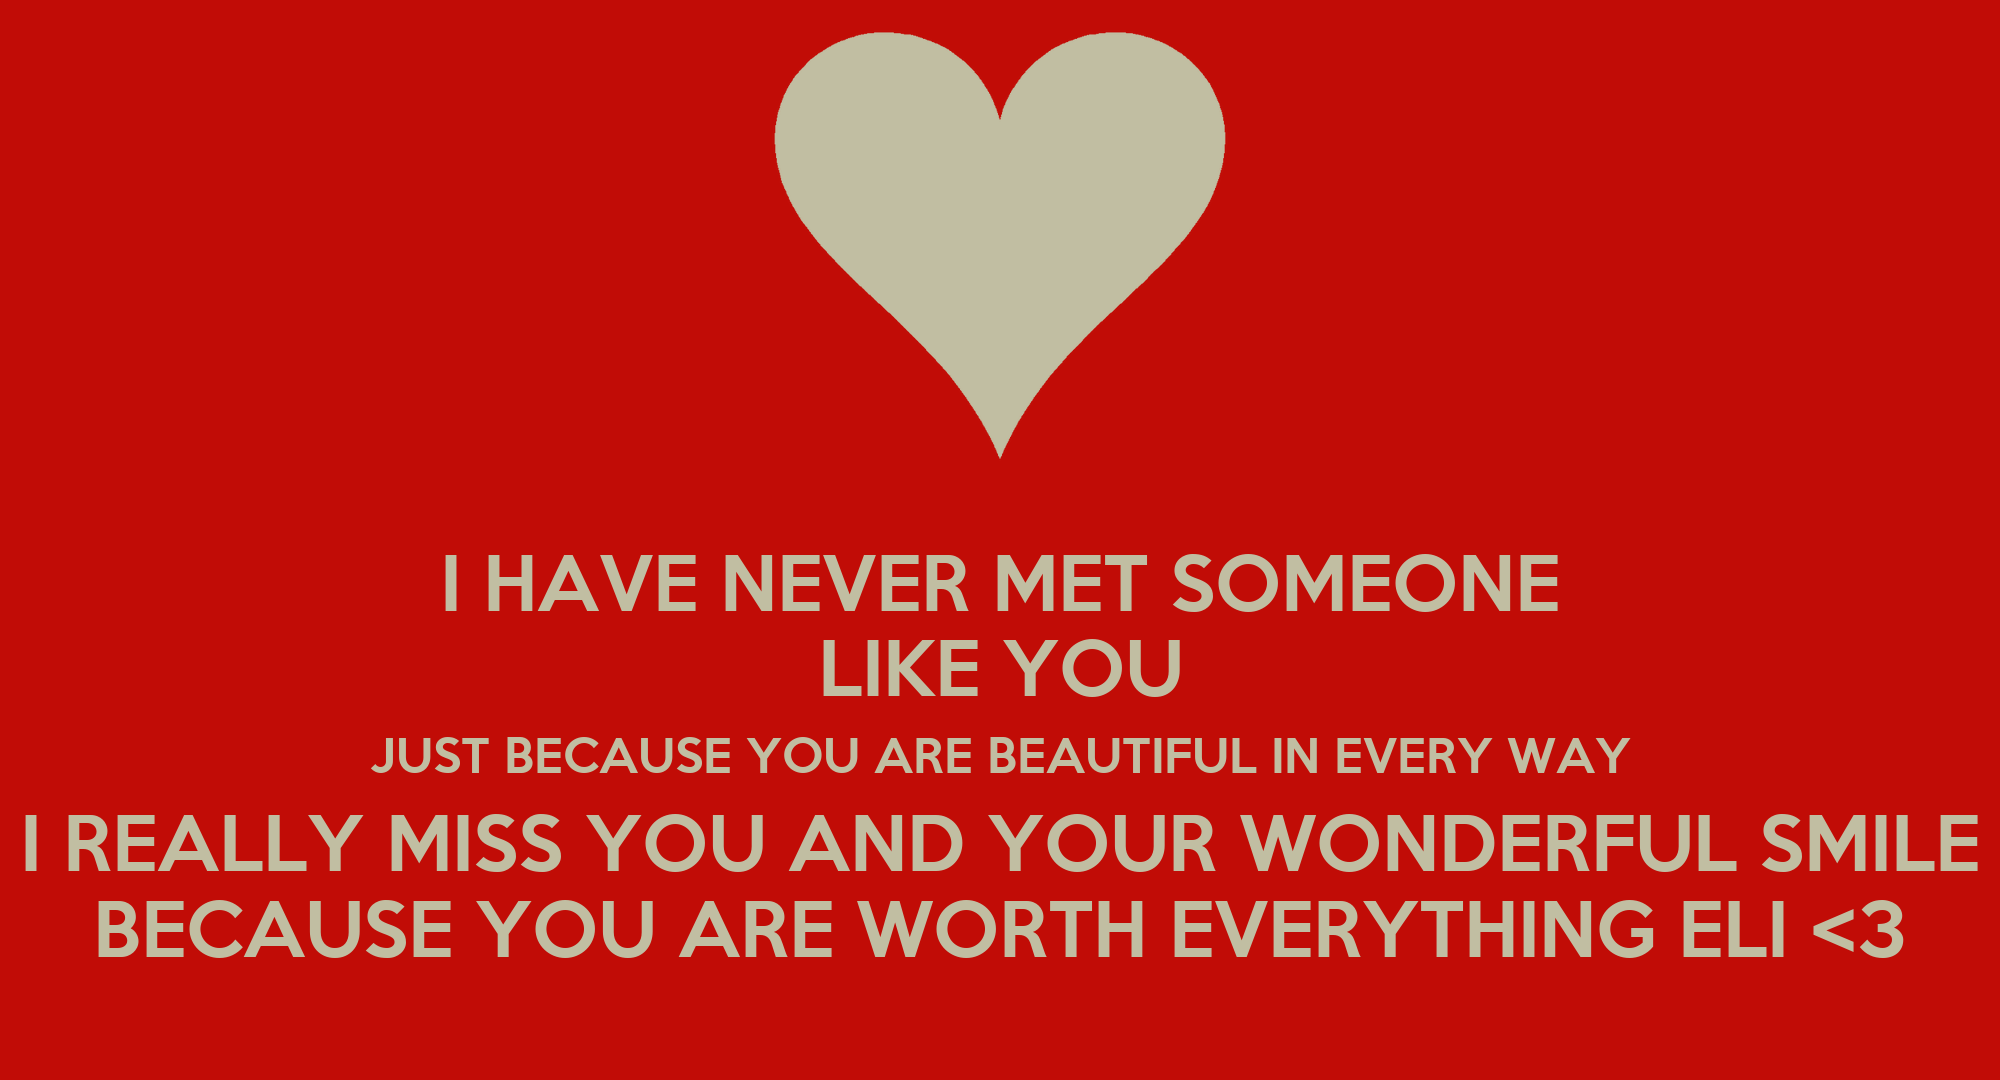 Just Met You Quotes For Someone. QuotesGram